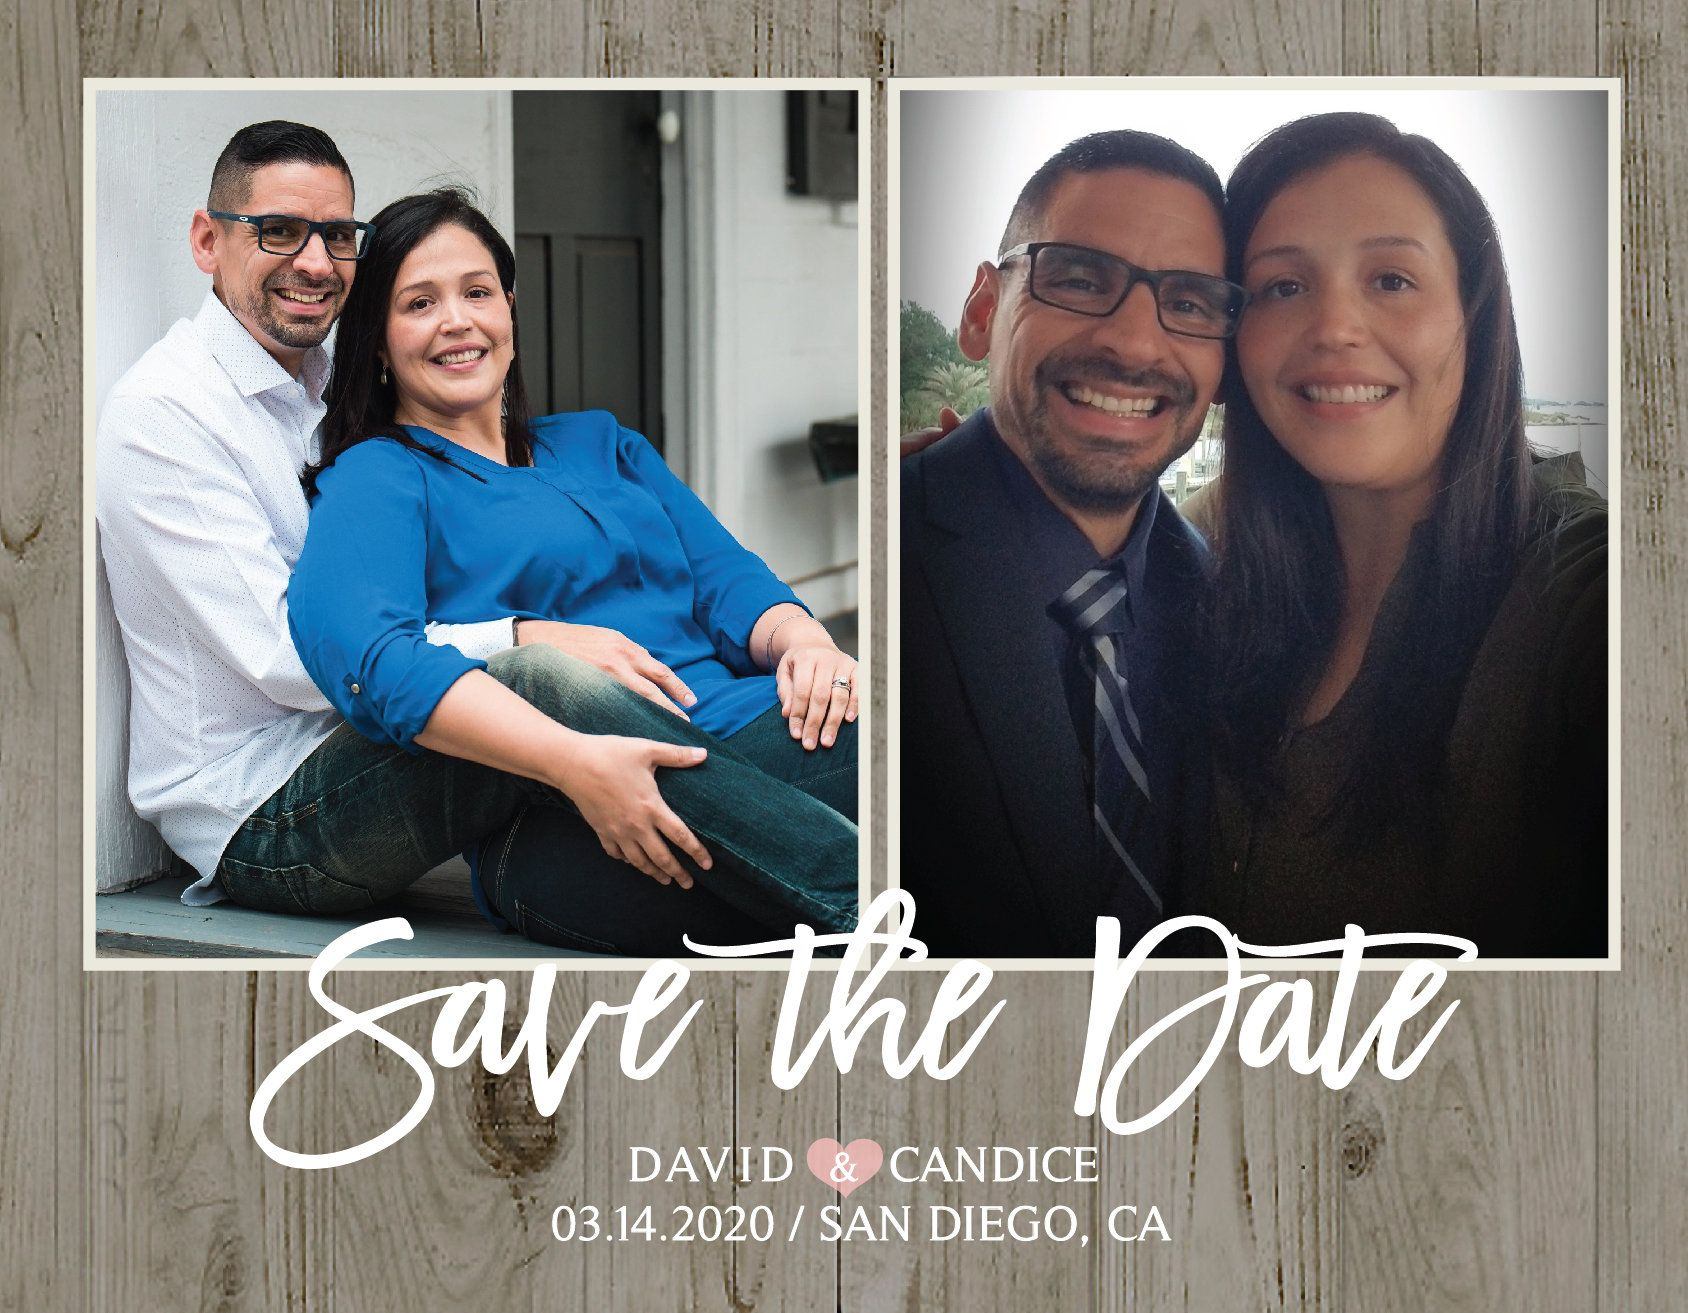 graduation Wedding save the dates thank you 2 two photo 3 three photo magnet card Modern Rustic pink purple navy grey country wood